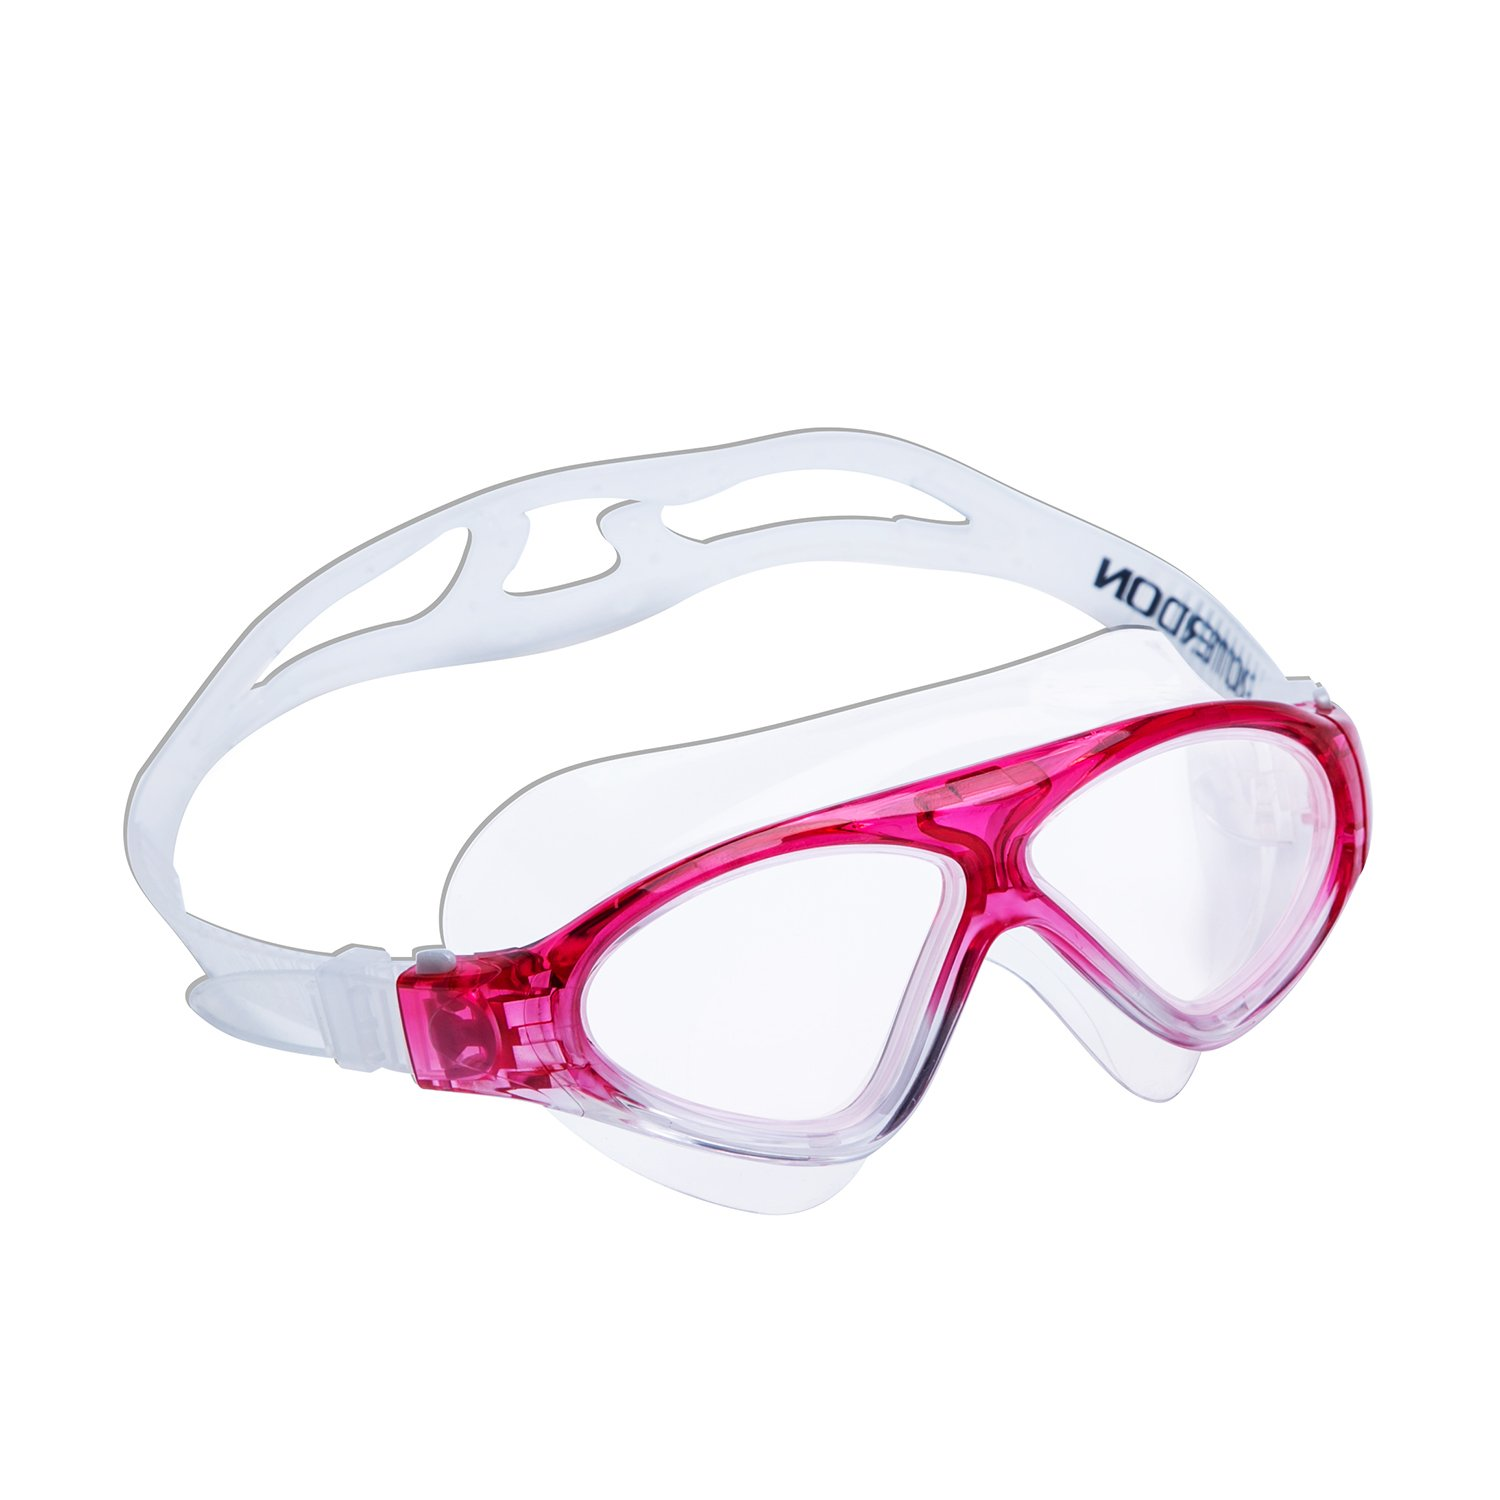 Wide View Swimming Goggle Anti Fog UV Protection No Leaking Glasses for Adult Men Women Youth Kids ROTERDON Swim Mask